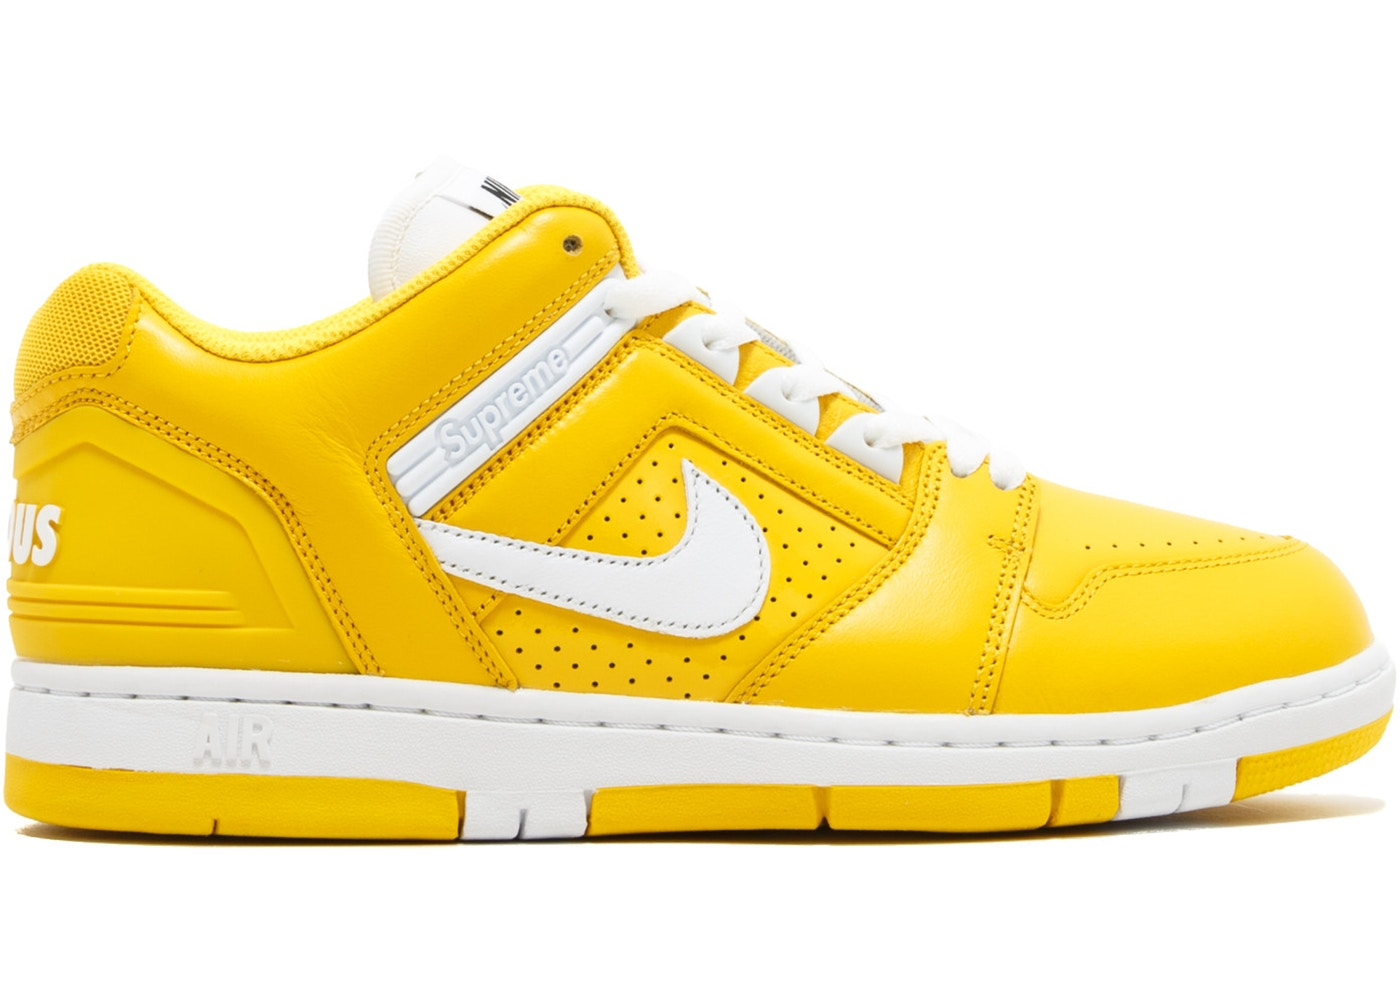 8563ea9487be Nike SB Air Force 2 Low Supreme Yellow - AA0871-717